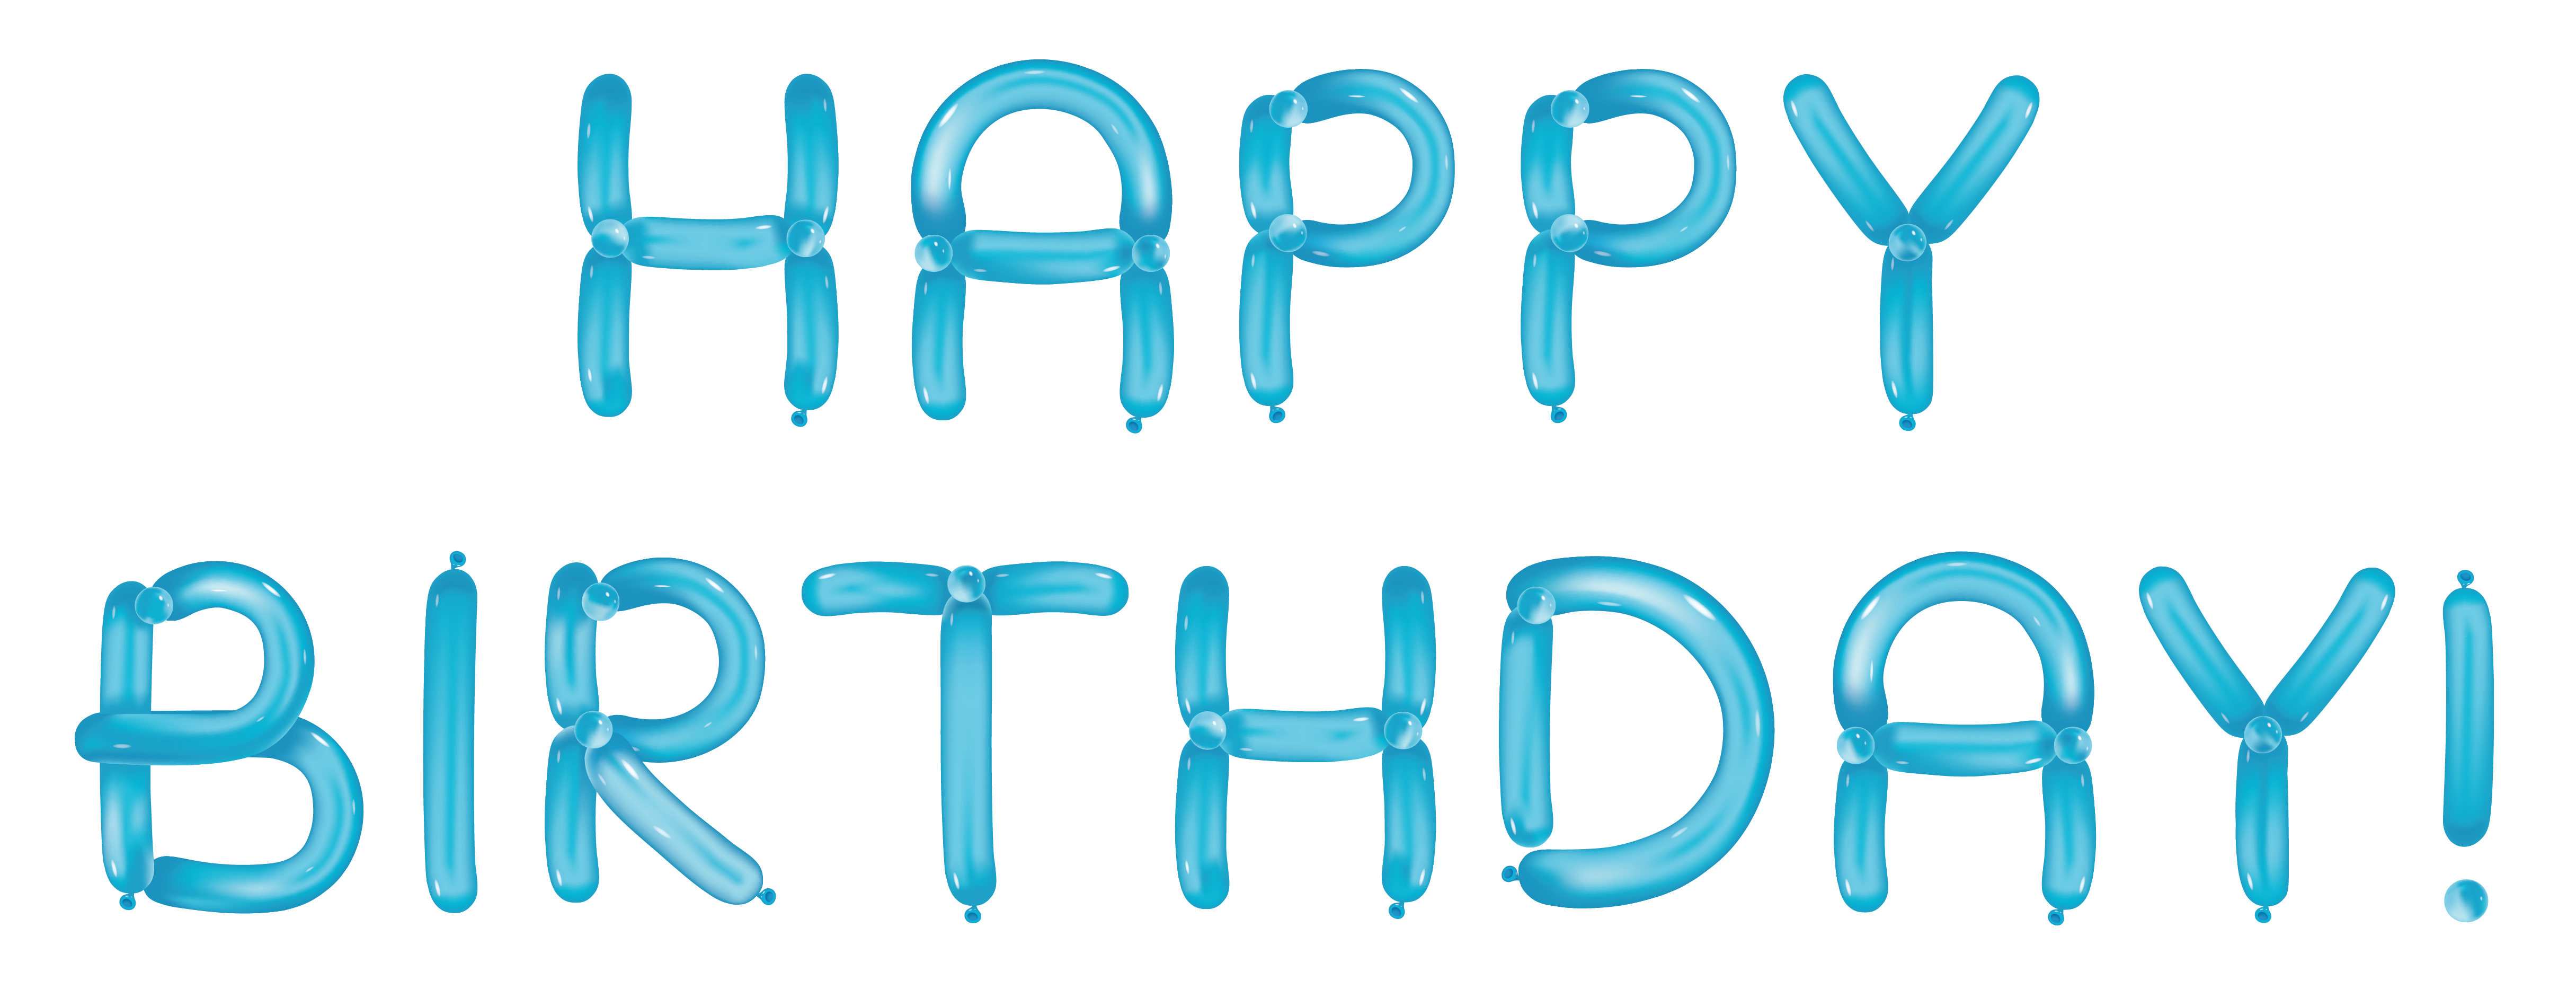 Blue snowflake free banner clipart clip art free download Happy Birthday with Blue Balloons Transparent Clipart | Gallery ... clip art free download